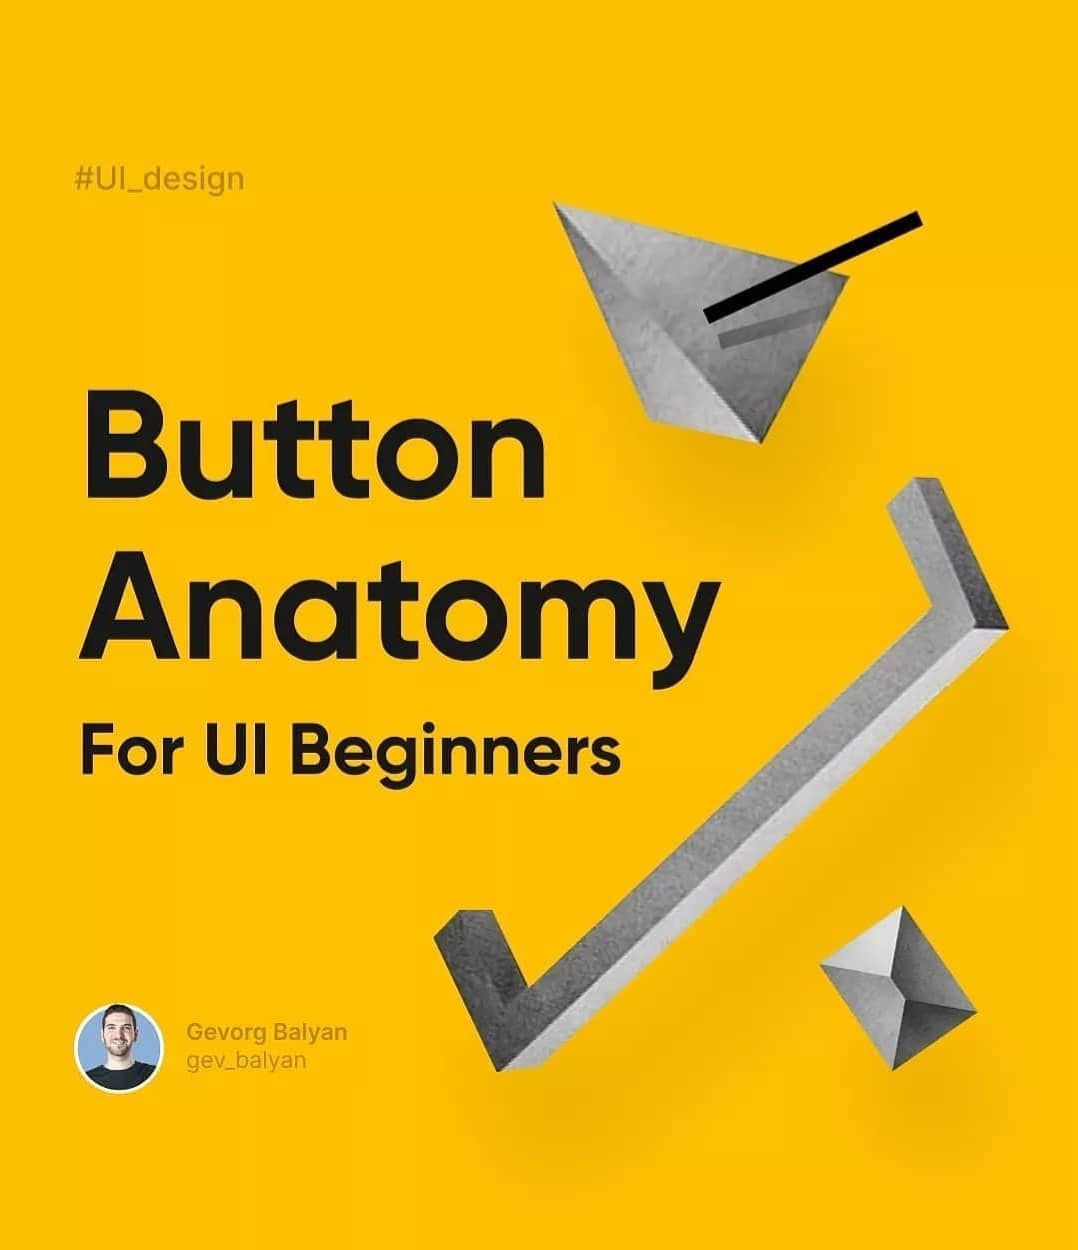 Button anatomy for ui beginners